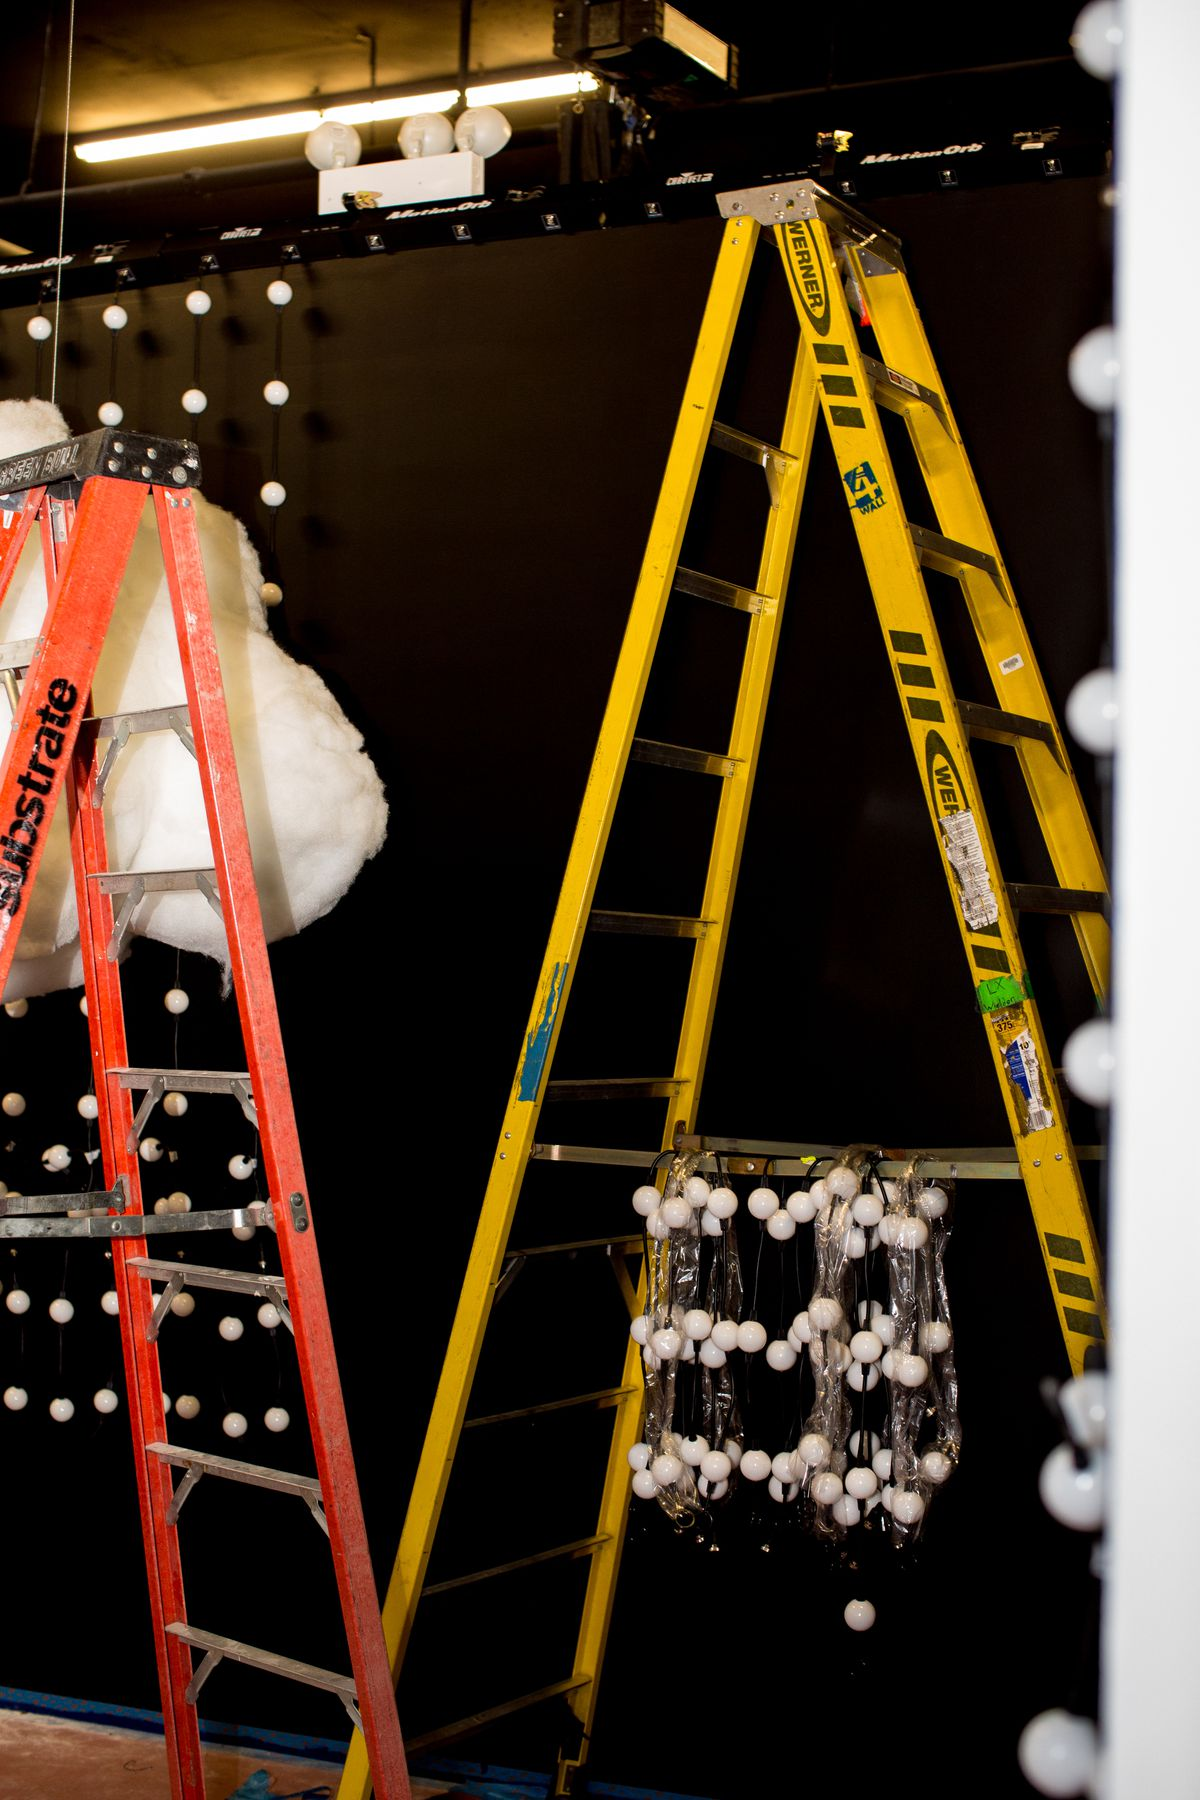 Dream Machine ladders with lights hanging on them, midway through installation or floating clouds/blinking lights room